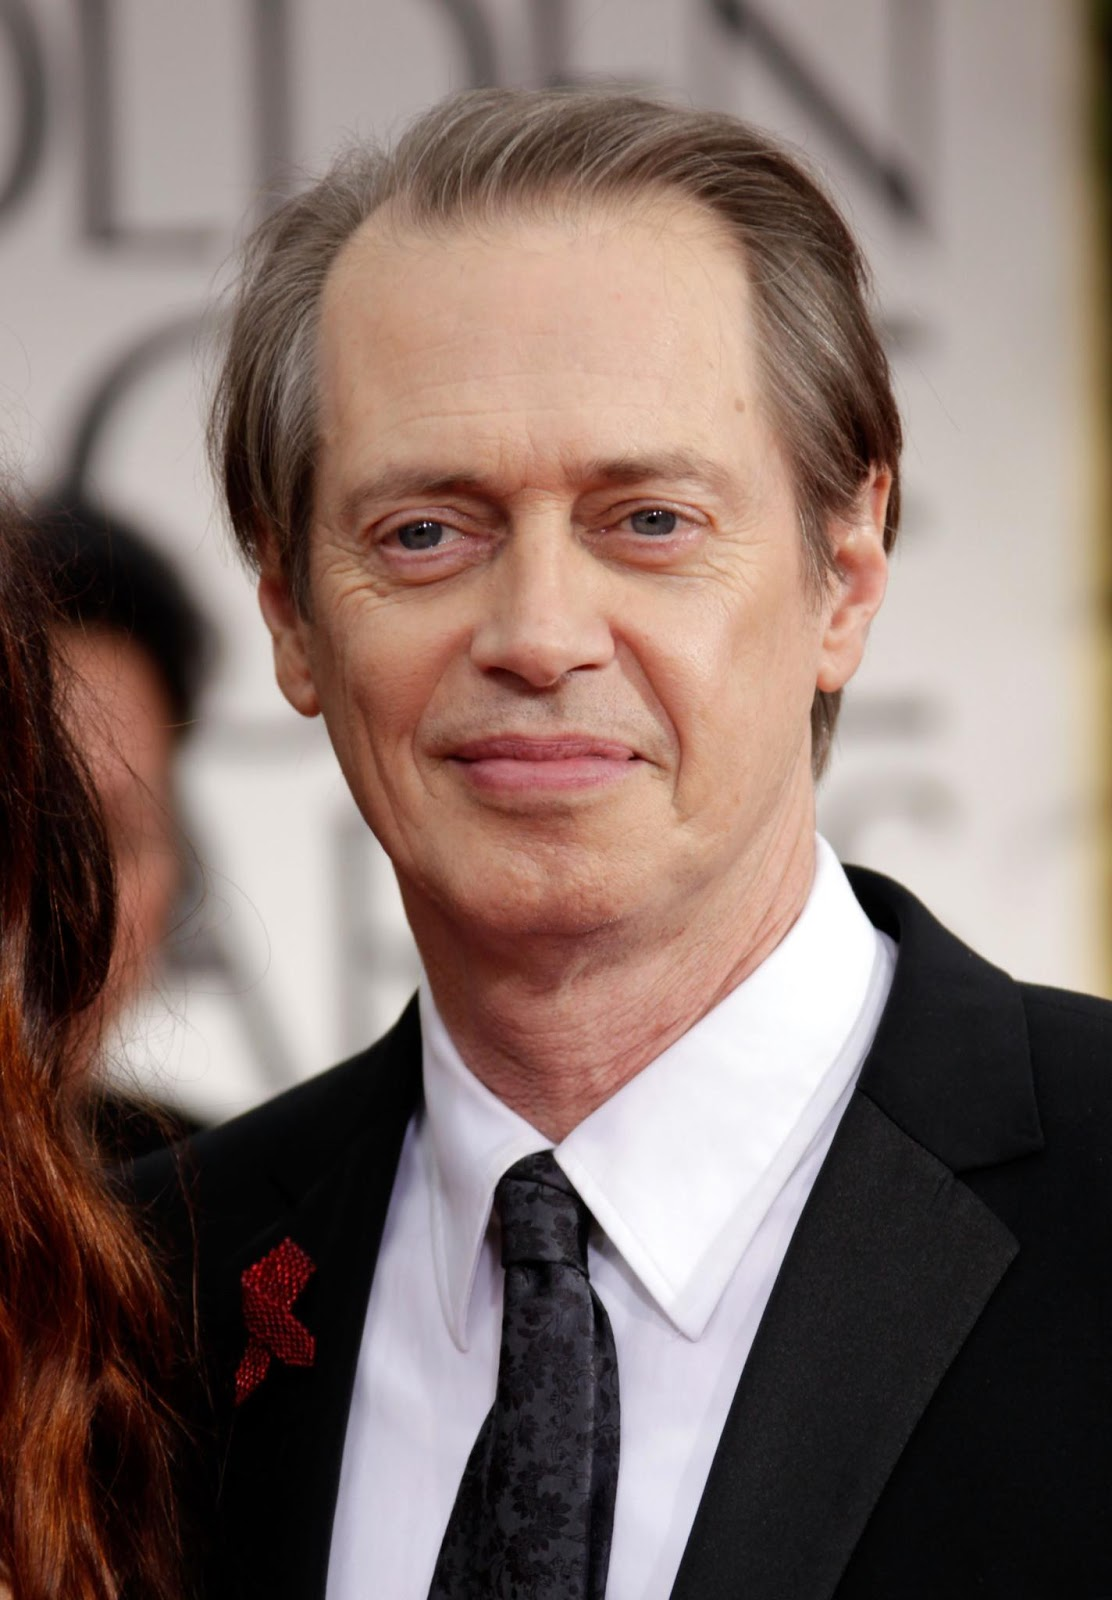 Steve Buscemi Wallpapers 4K 1112x1600 px WallpapersExpertcom 1112x1600